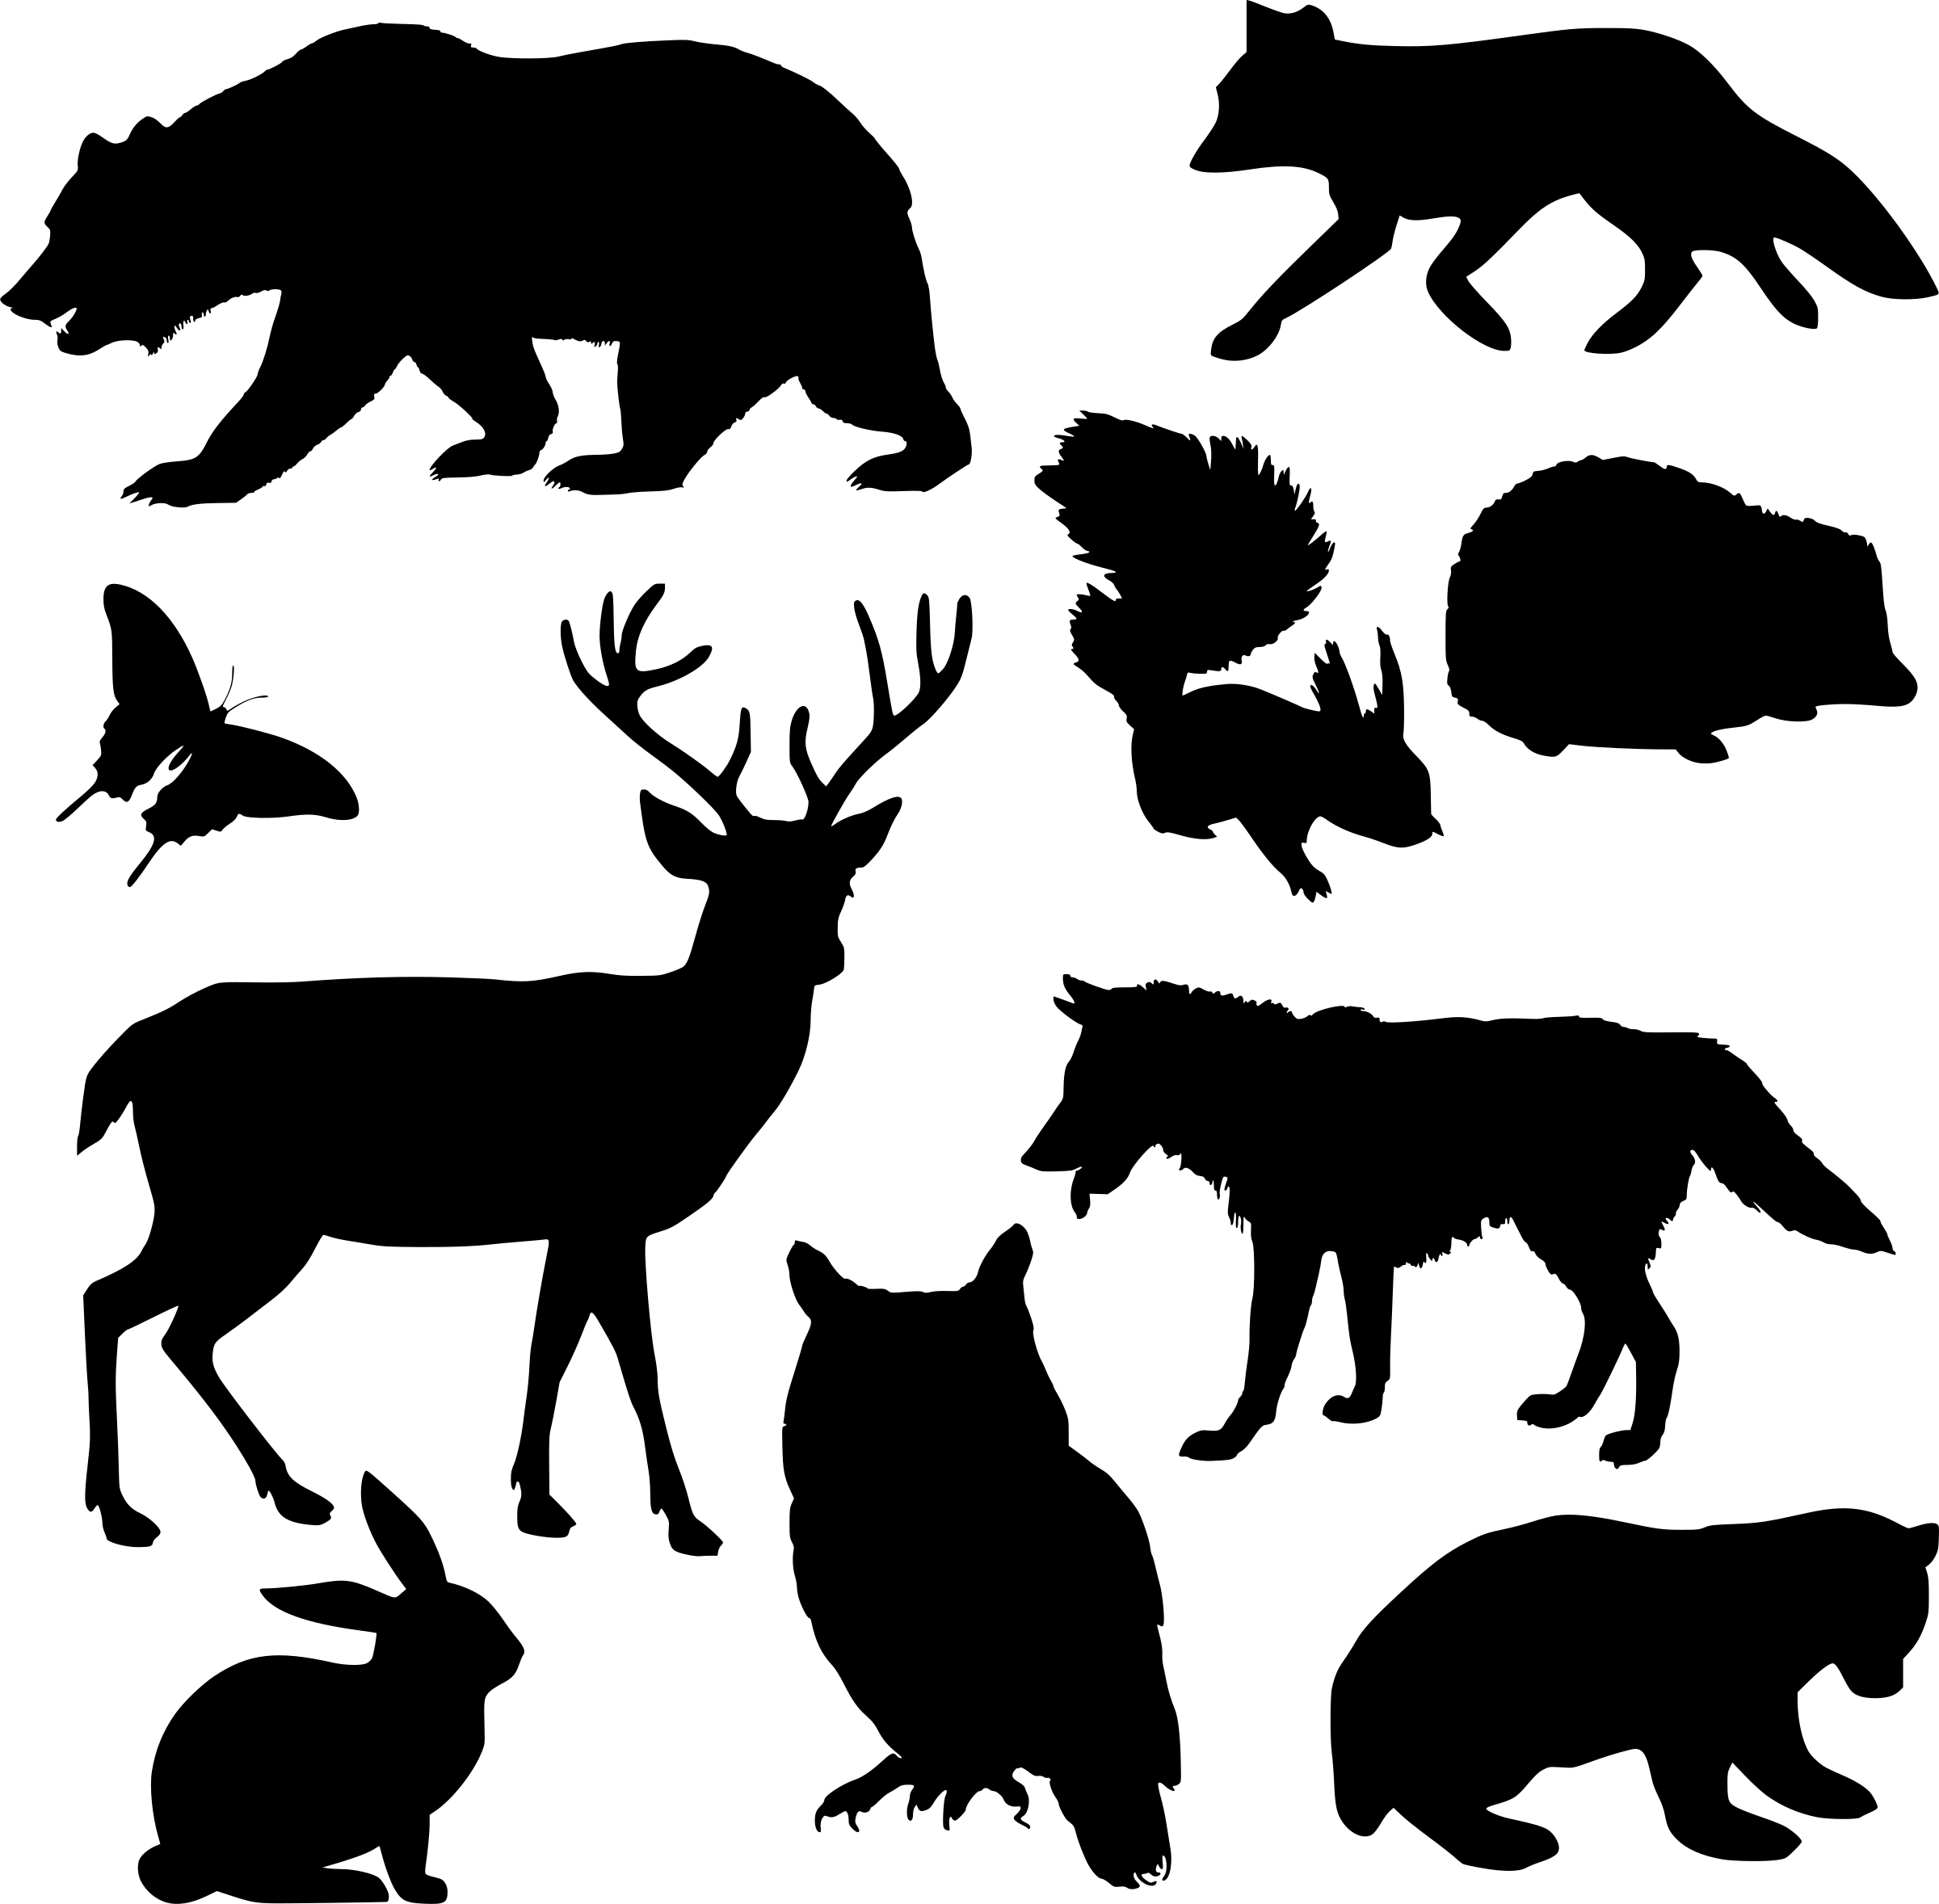 Silhouette animal clipart  Clipground